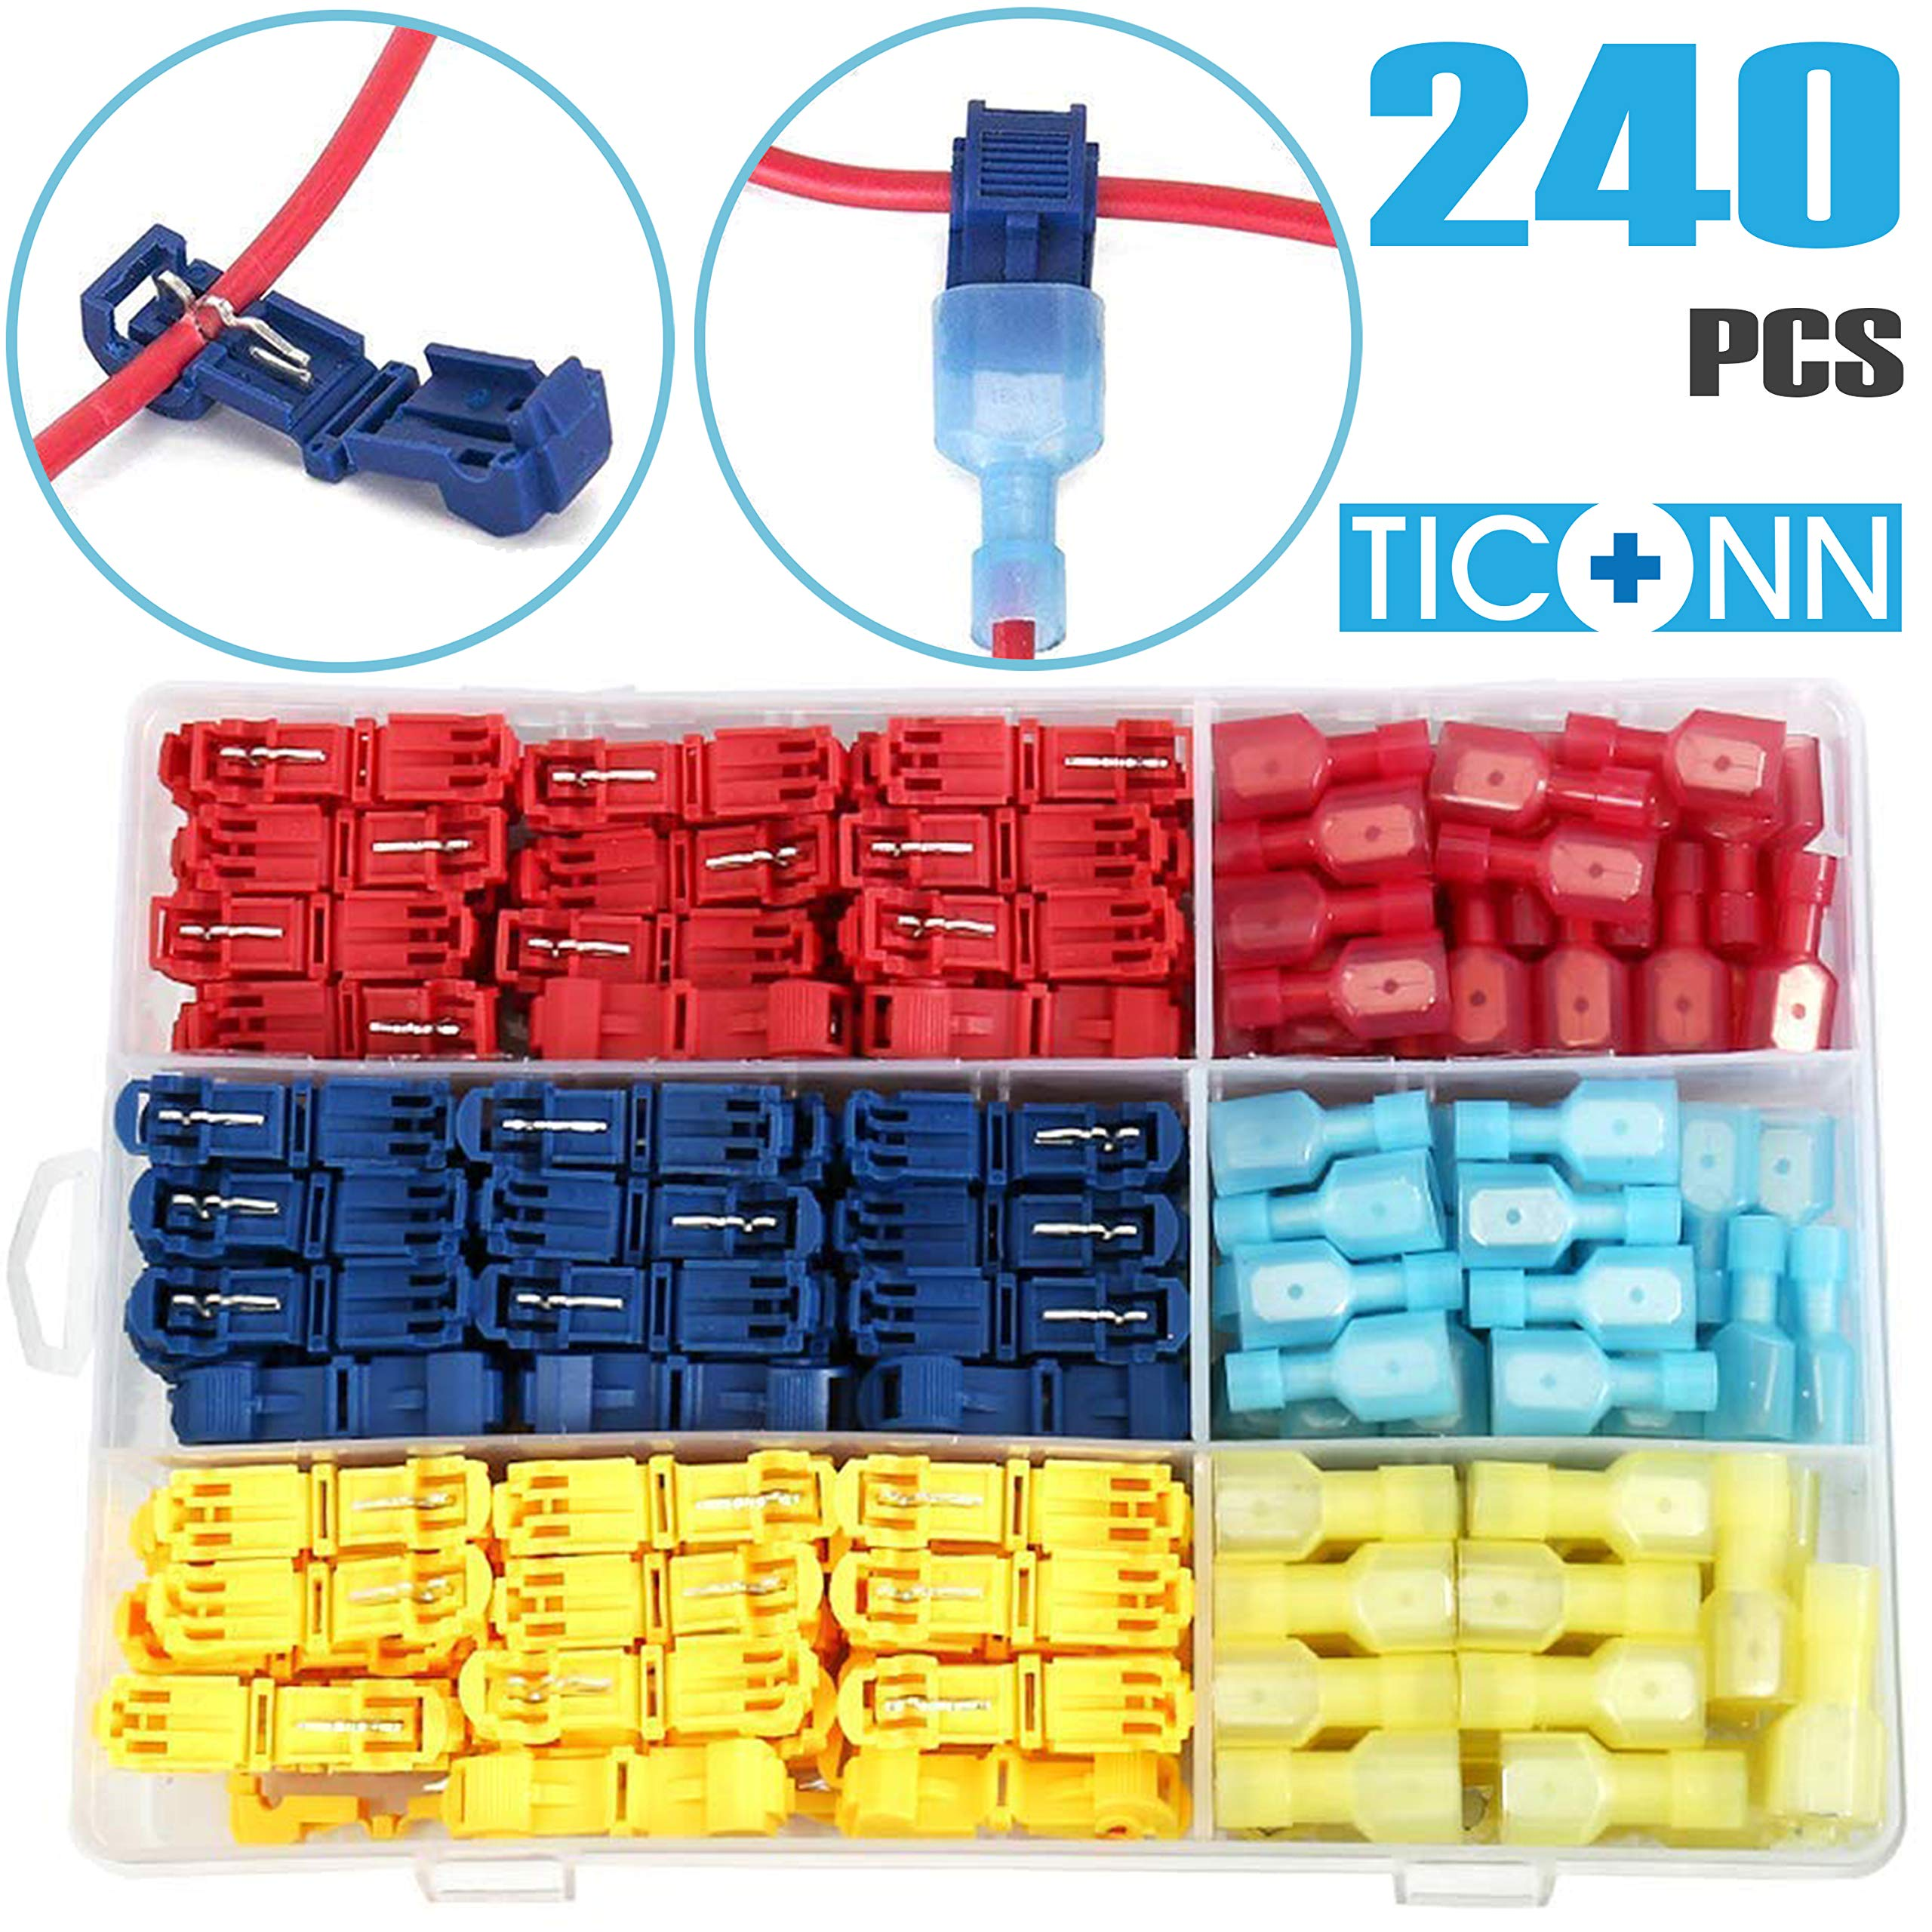 TICONN 240pcs T-Tap Wire Connectors, Self-Stripping Quick Splice Electrical Wire Terminals, Insulated Male Quick Disconnect Spade Terminals Assortment Kit with Storage Case by TICONN